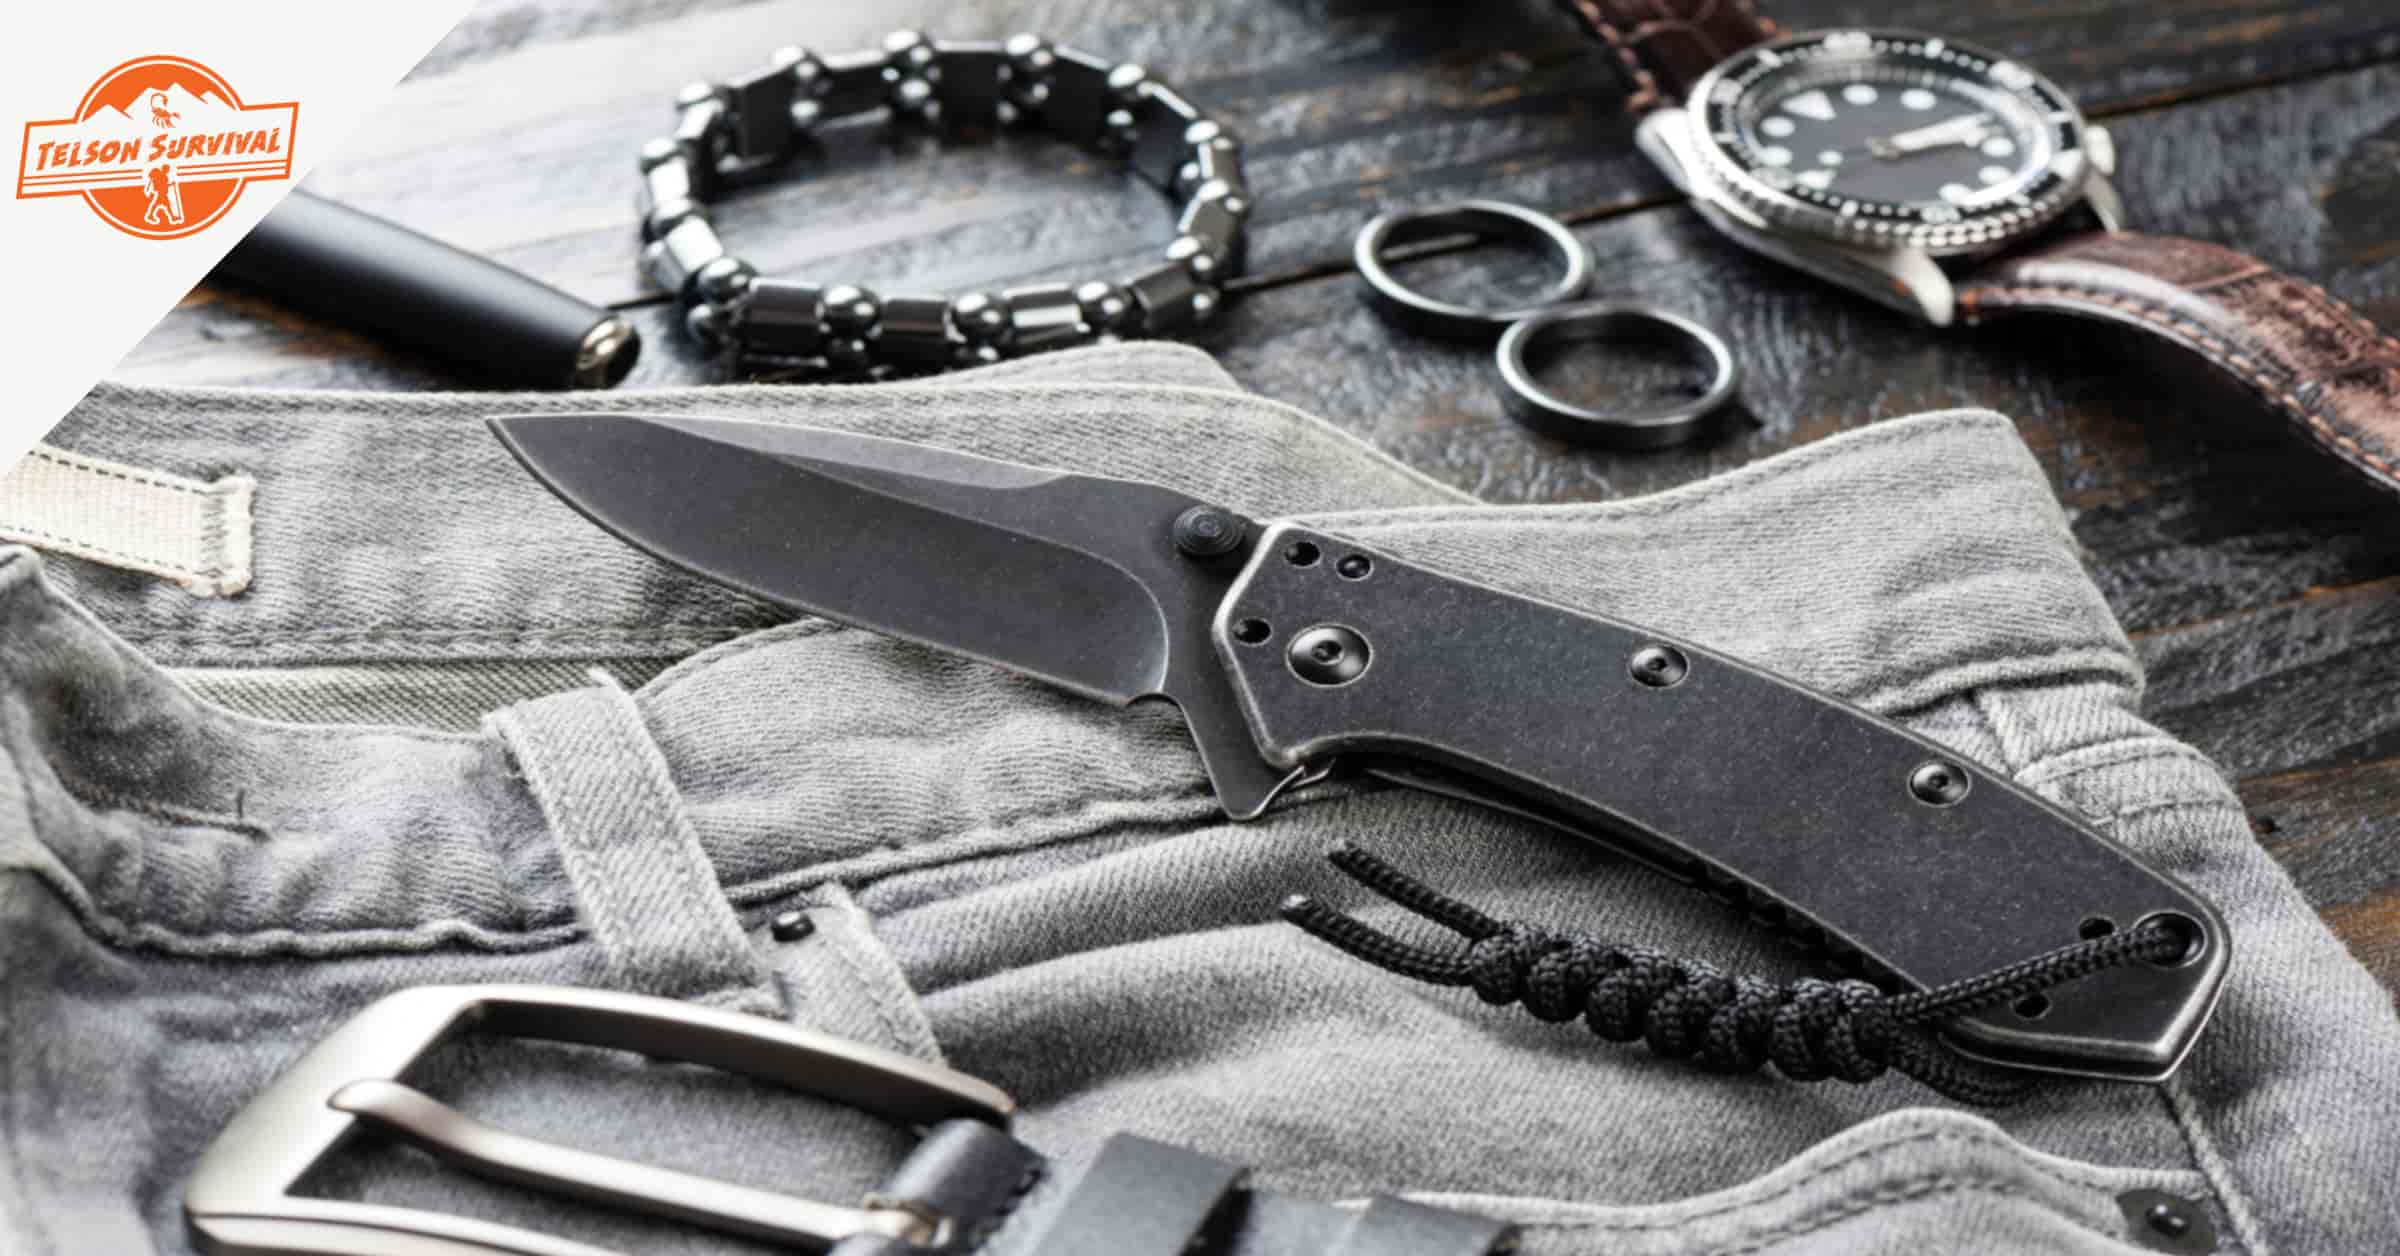 EDC knife, pen, watch and belt as part of everyday carry items